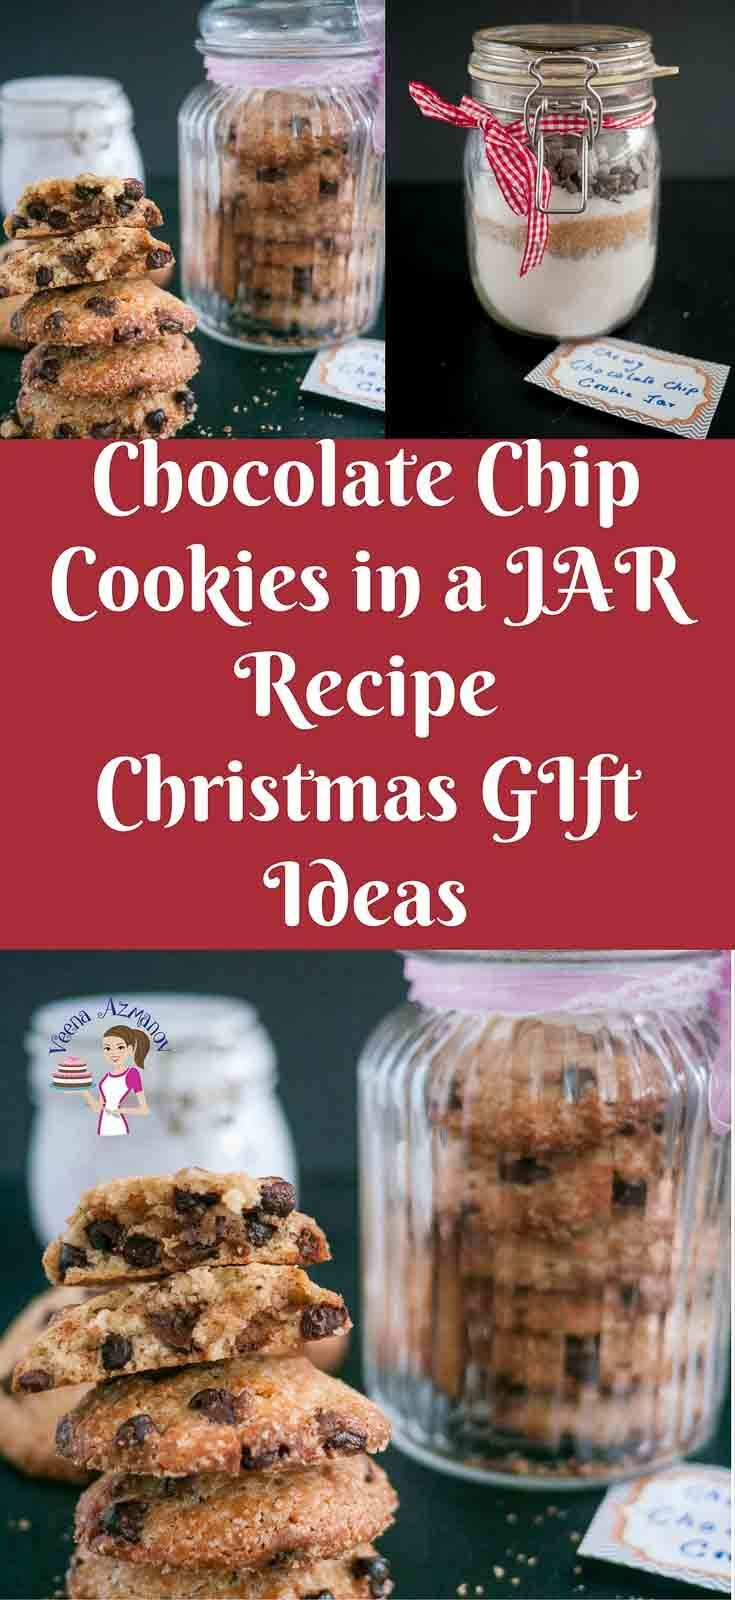 This Chocolate Chip Cookie Jar Makes A Perfect Christmas Gift For Family And Friends Filling T Cookies Recipes Christmas Chocolate Chip Cookies Christmas Food